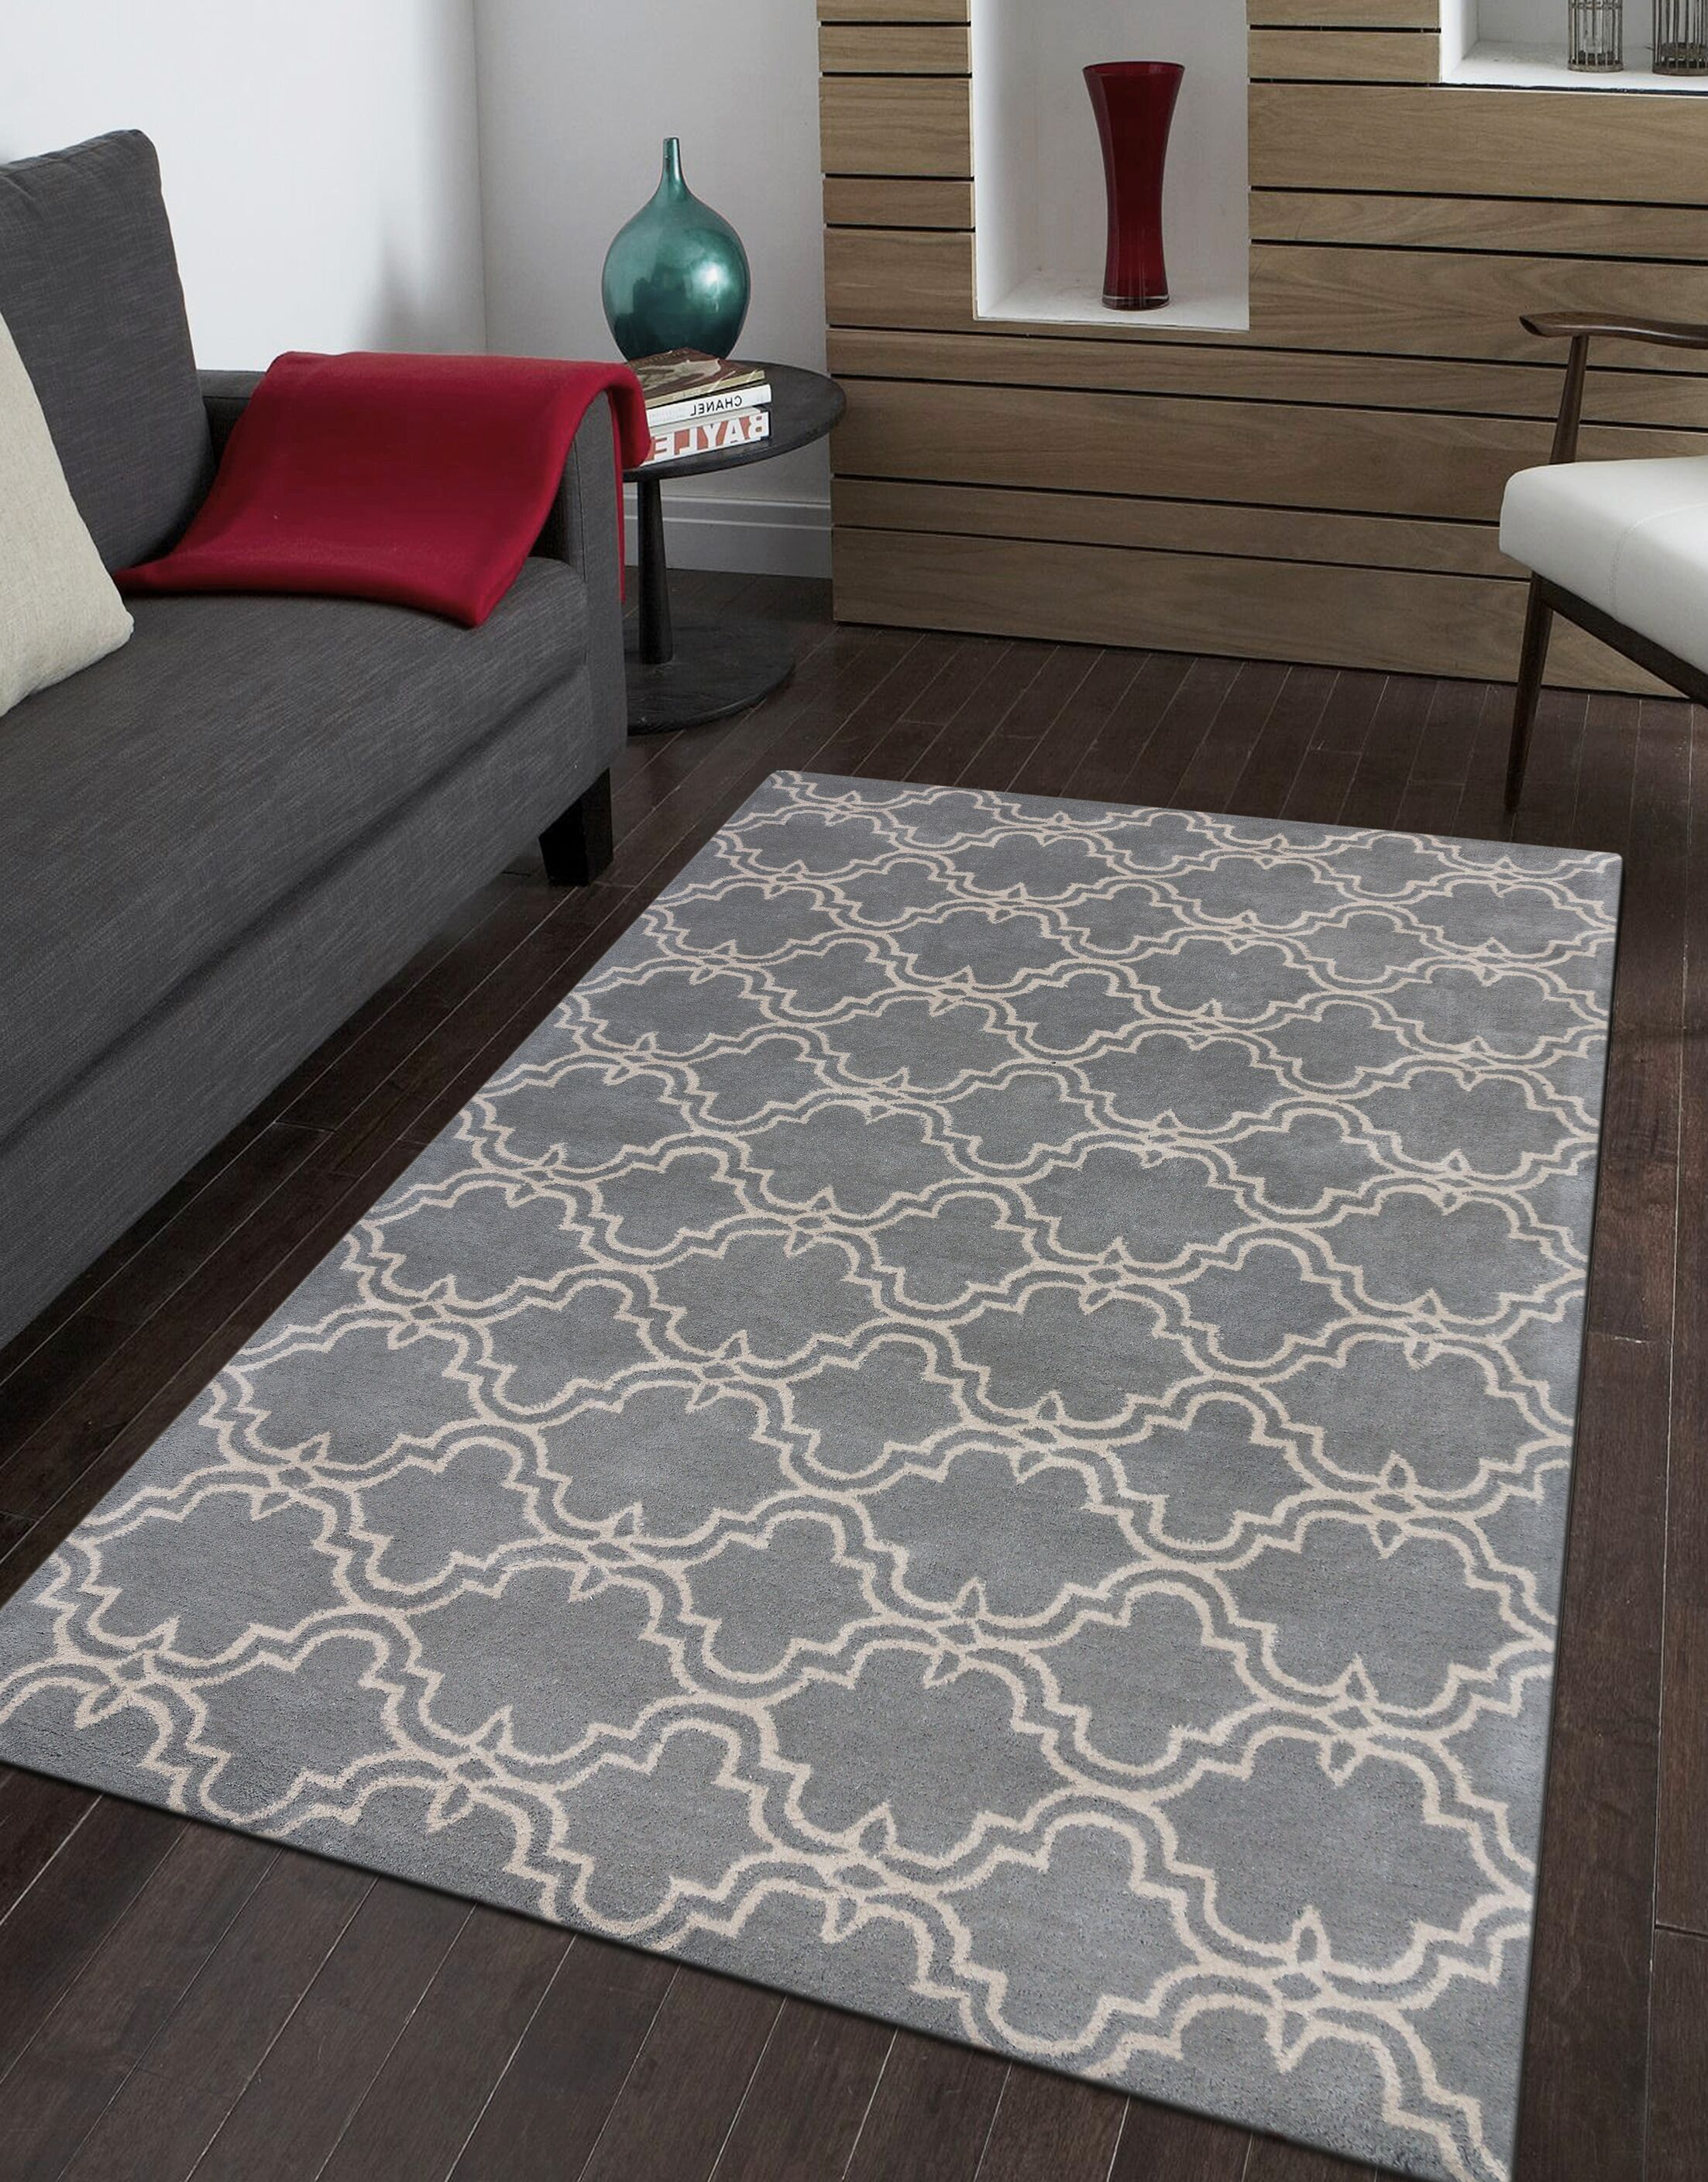 Ladd Trellis Wool Hand-Tufted Gray Area Rug Rug Size: Rectangle 9' x 12'